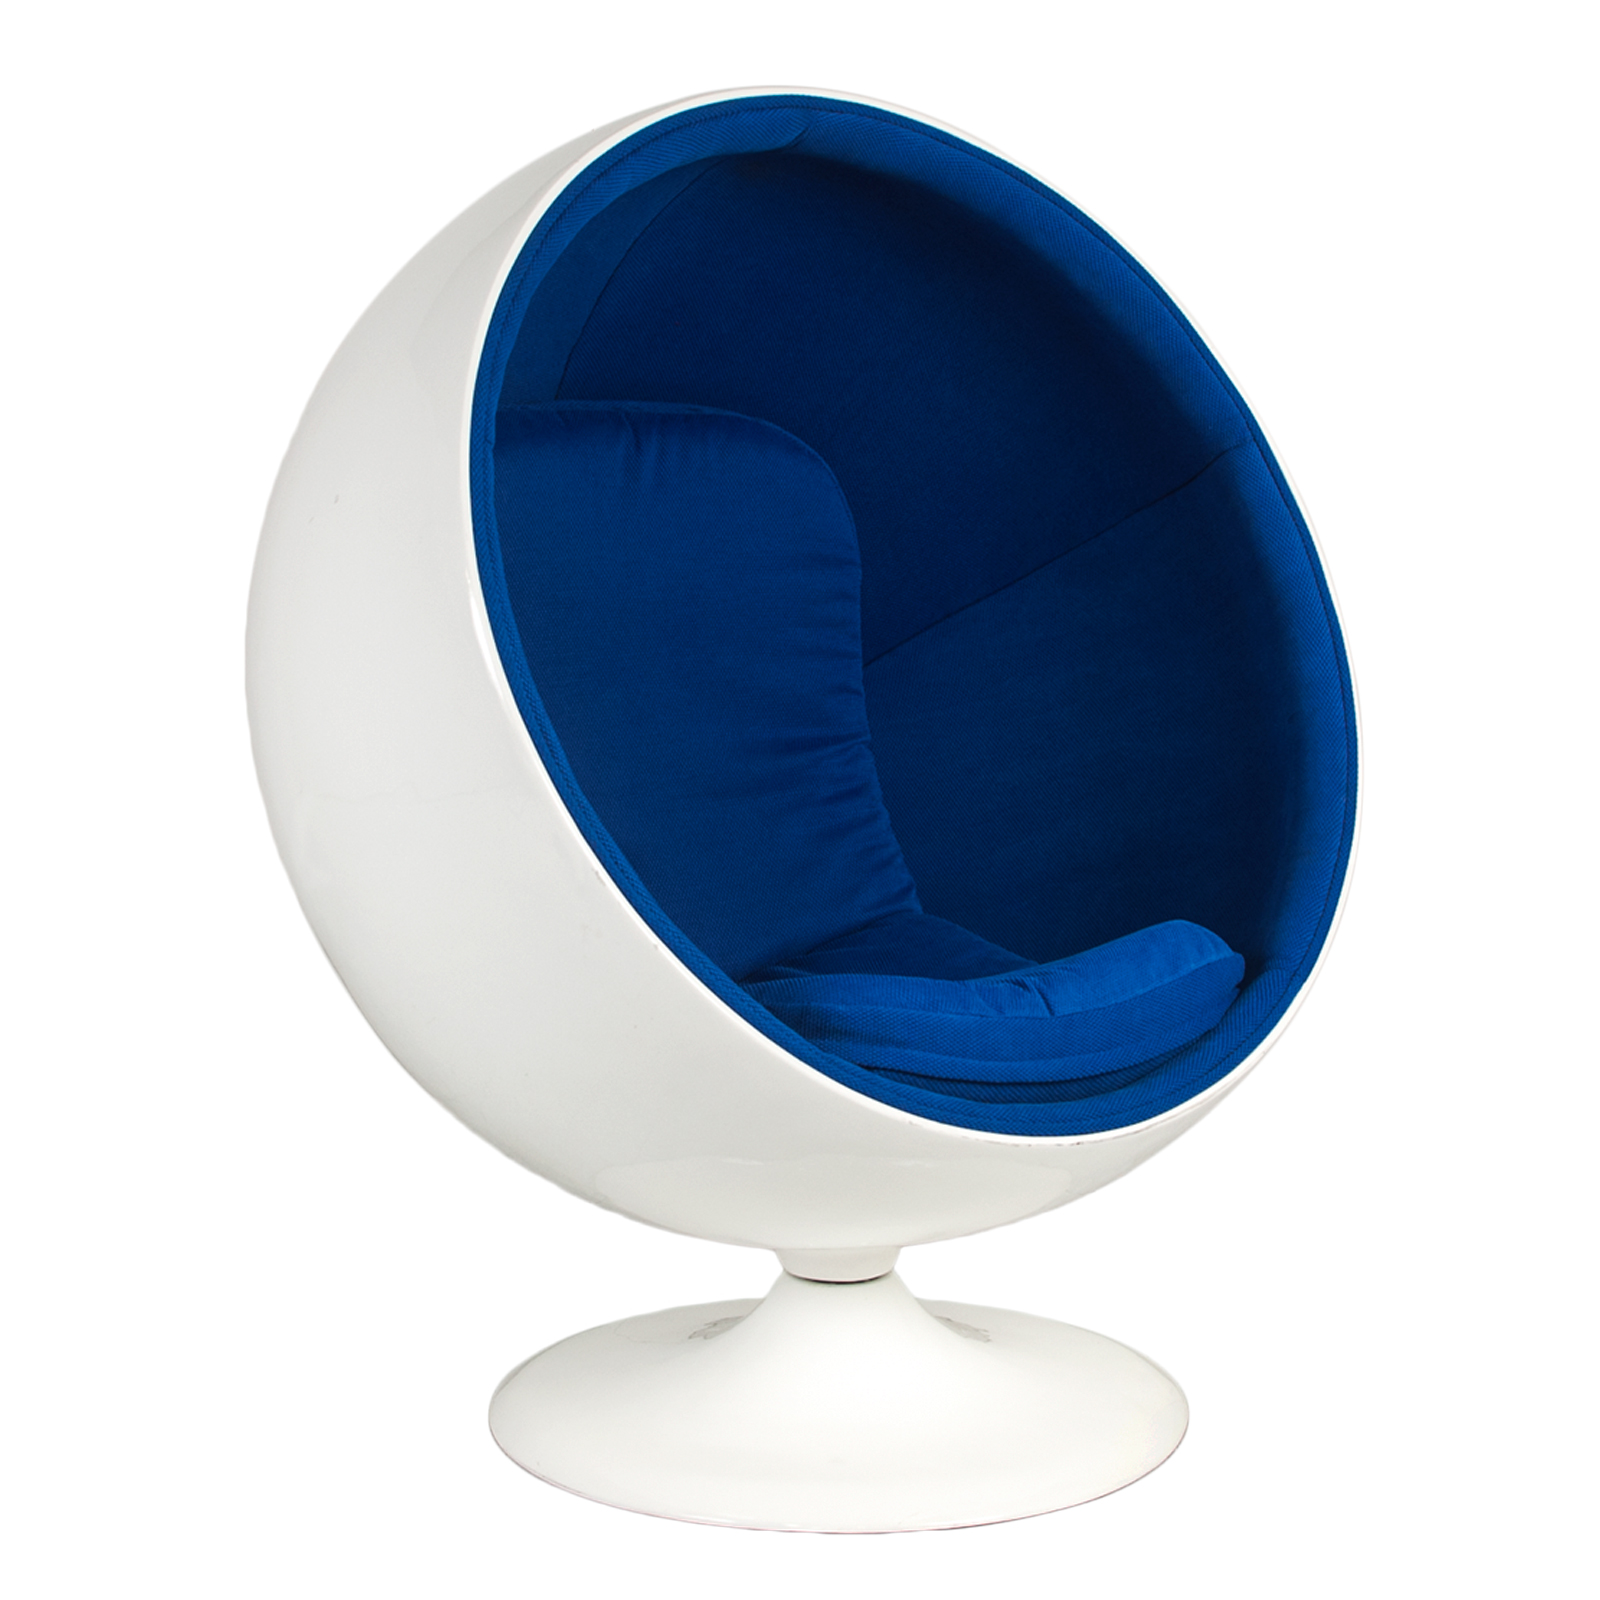 Ball Chair Eero Aarnio Rentals | Ball Chair | Event Furniture Rental